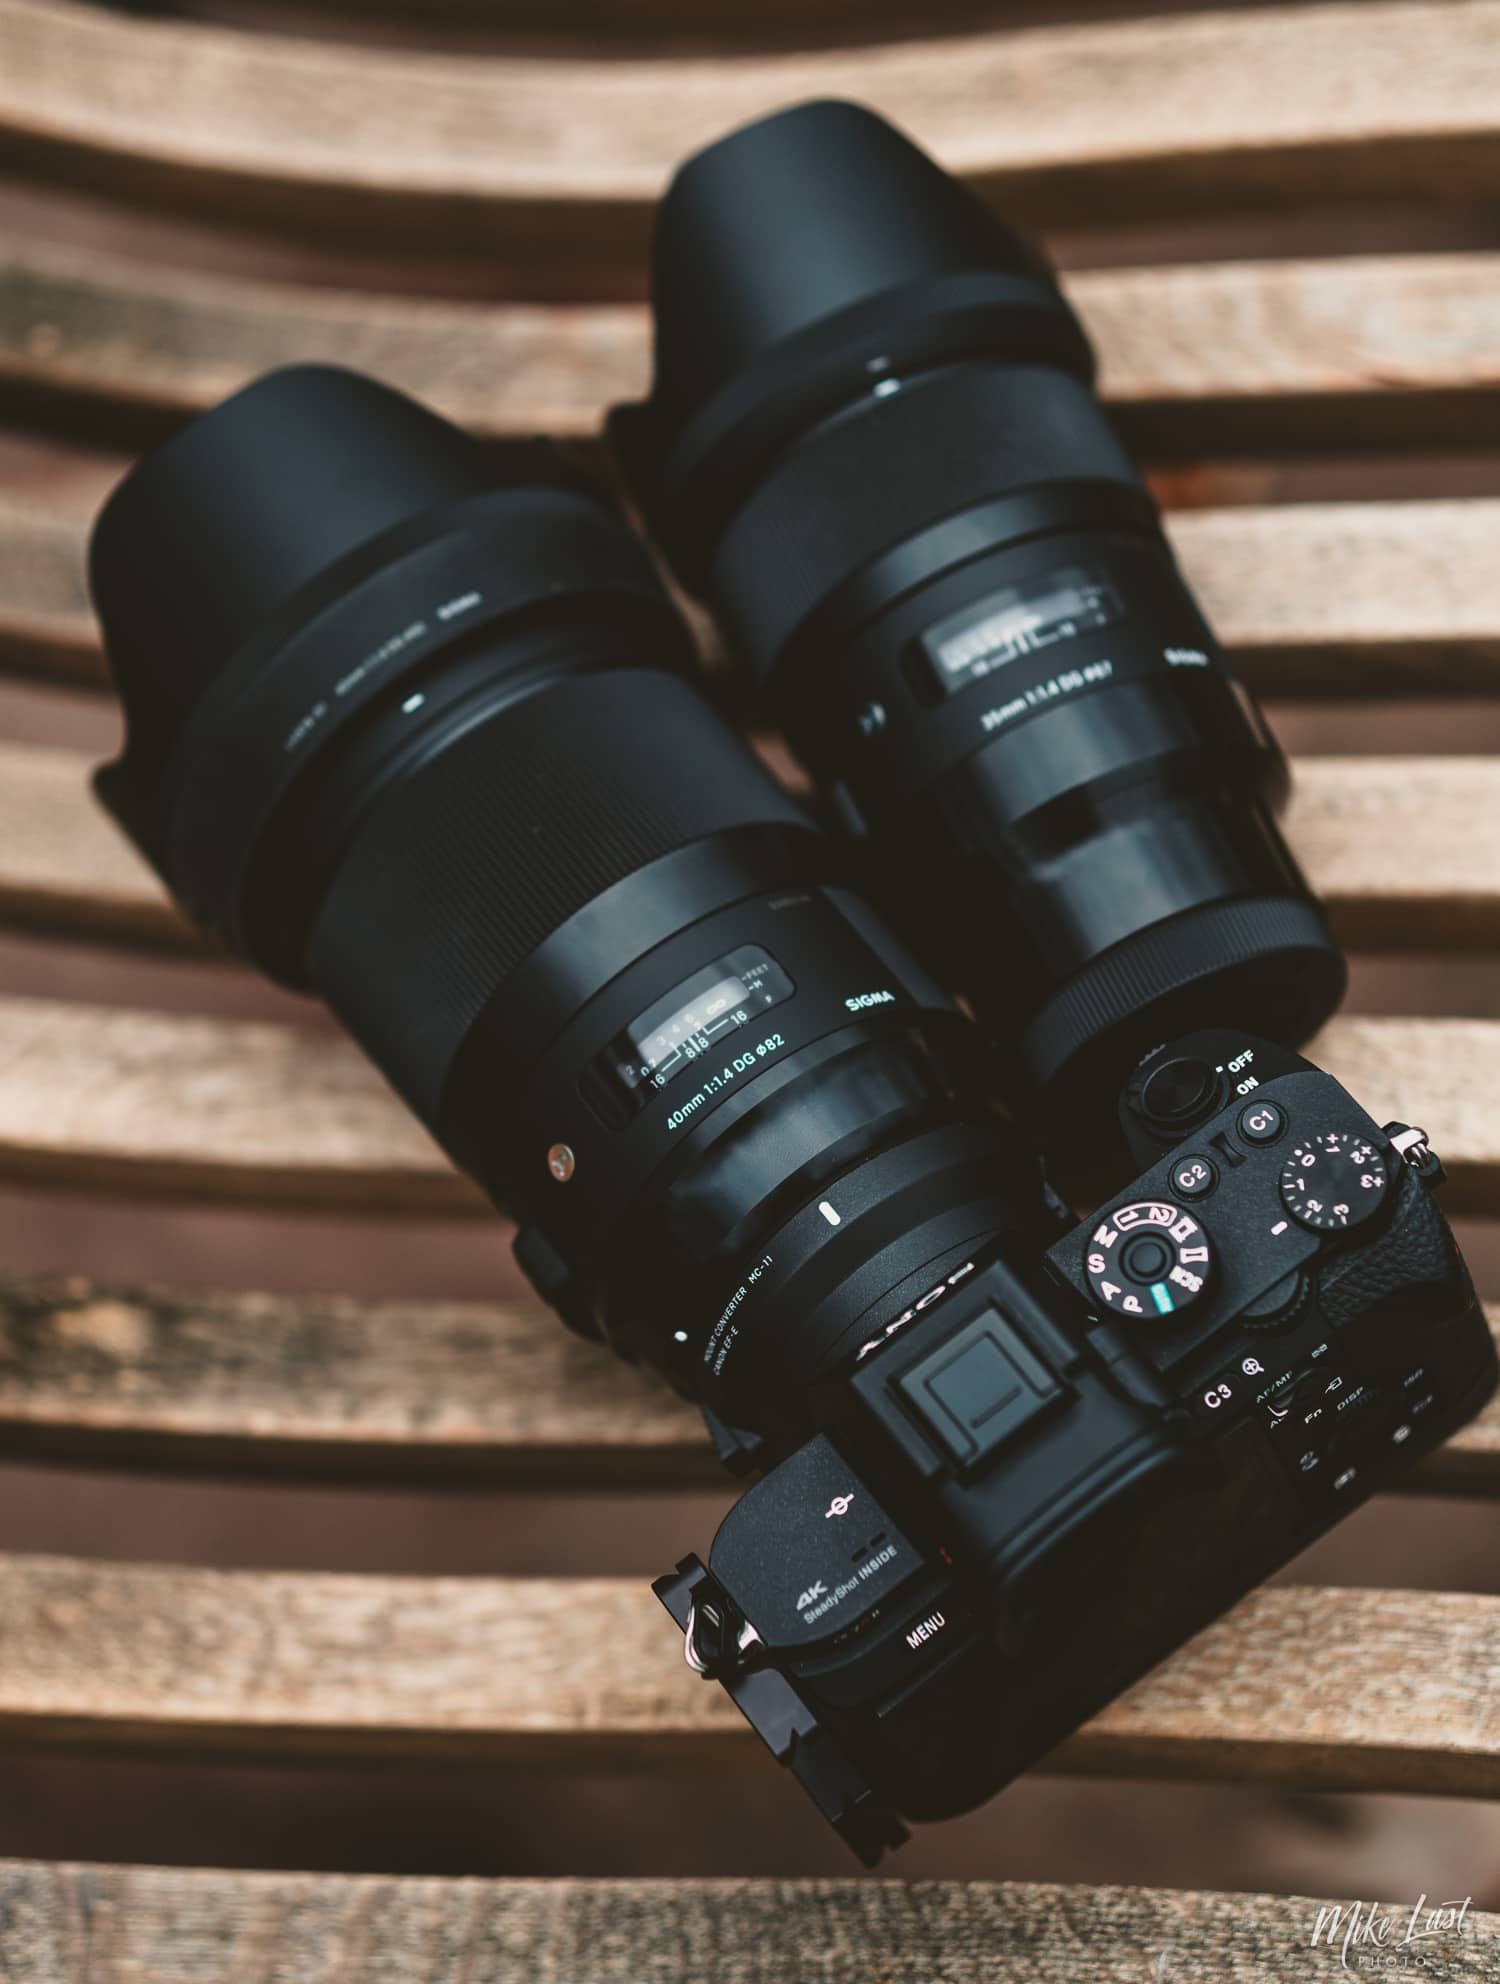 Sigma 40mm Art lens with MC-11 compared to 35mm Art E-Mount lens